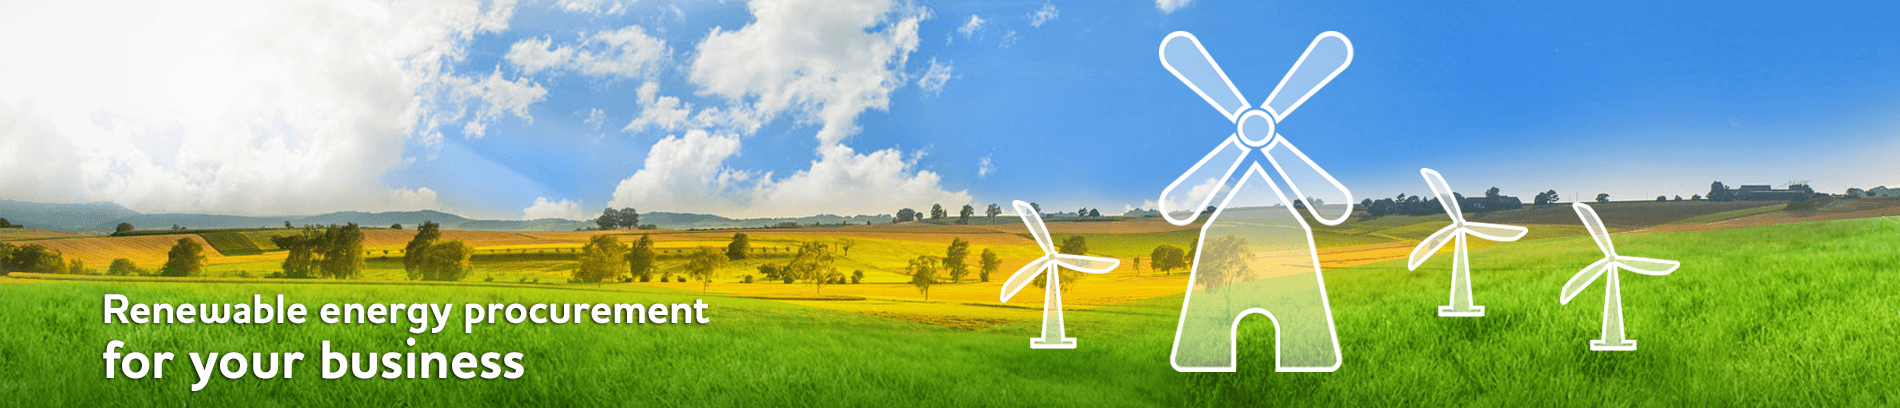 Green energy procurement for your business